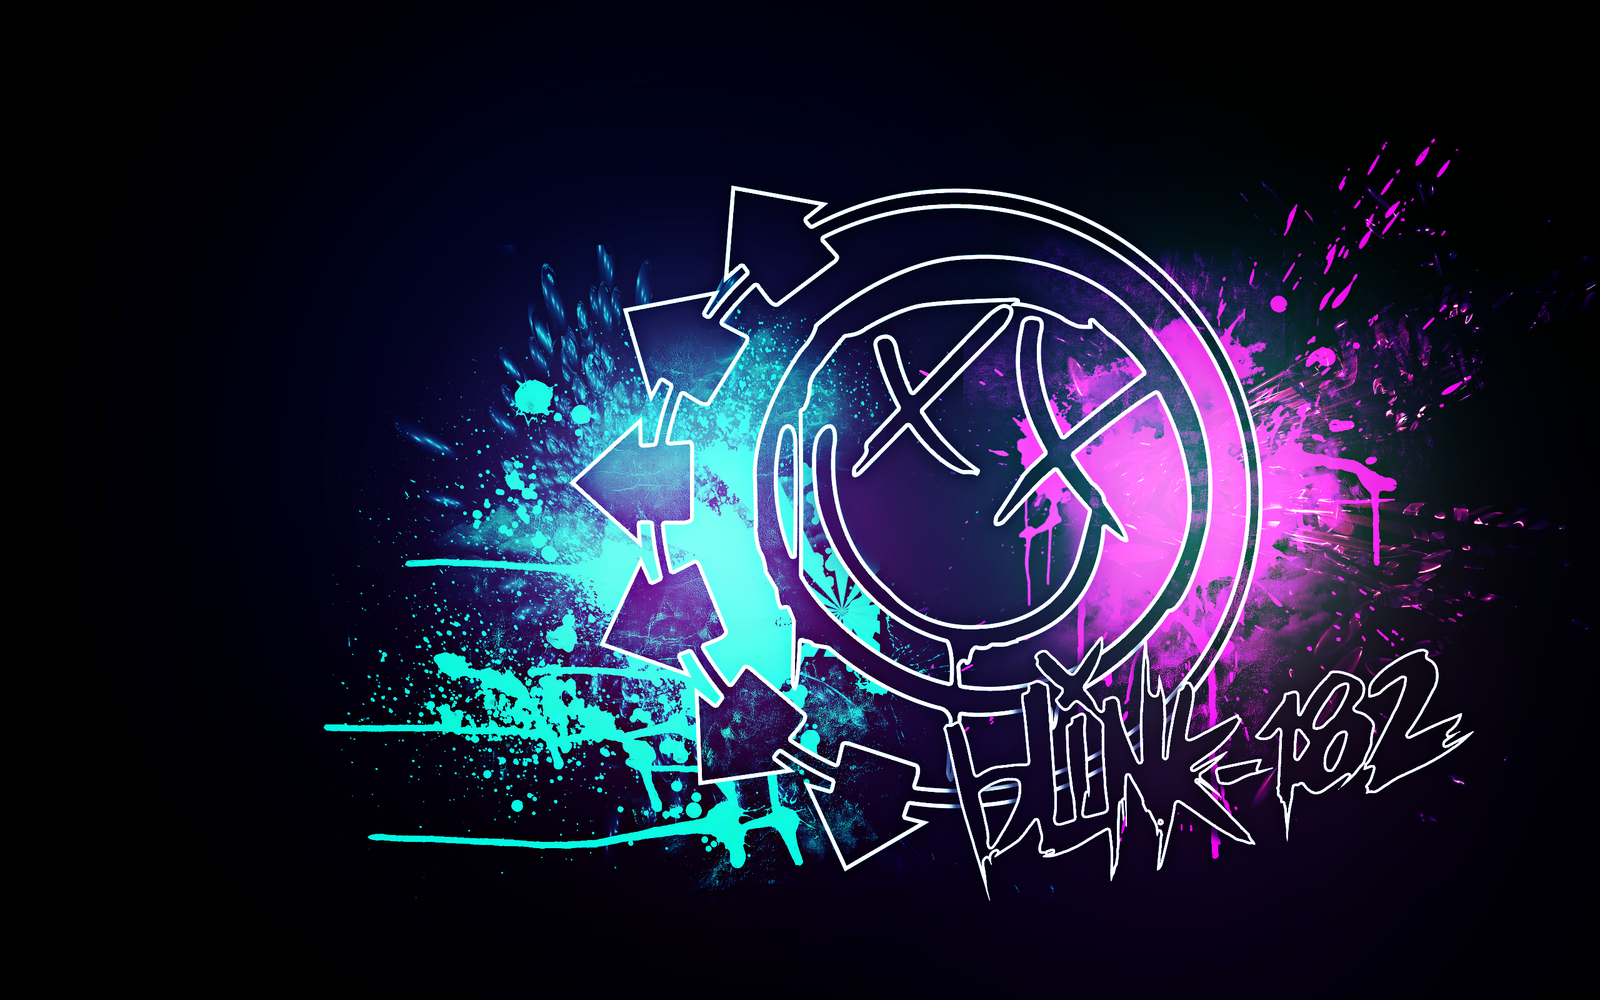 download Blink 182 Wallpaper by RageKG [1600x1000] for your 1600x1000